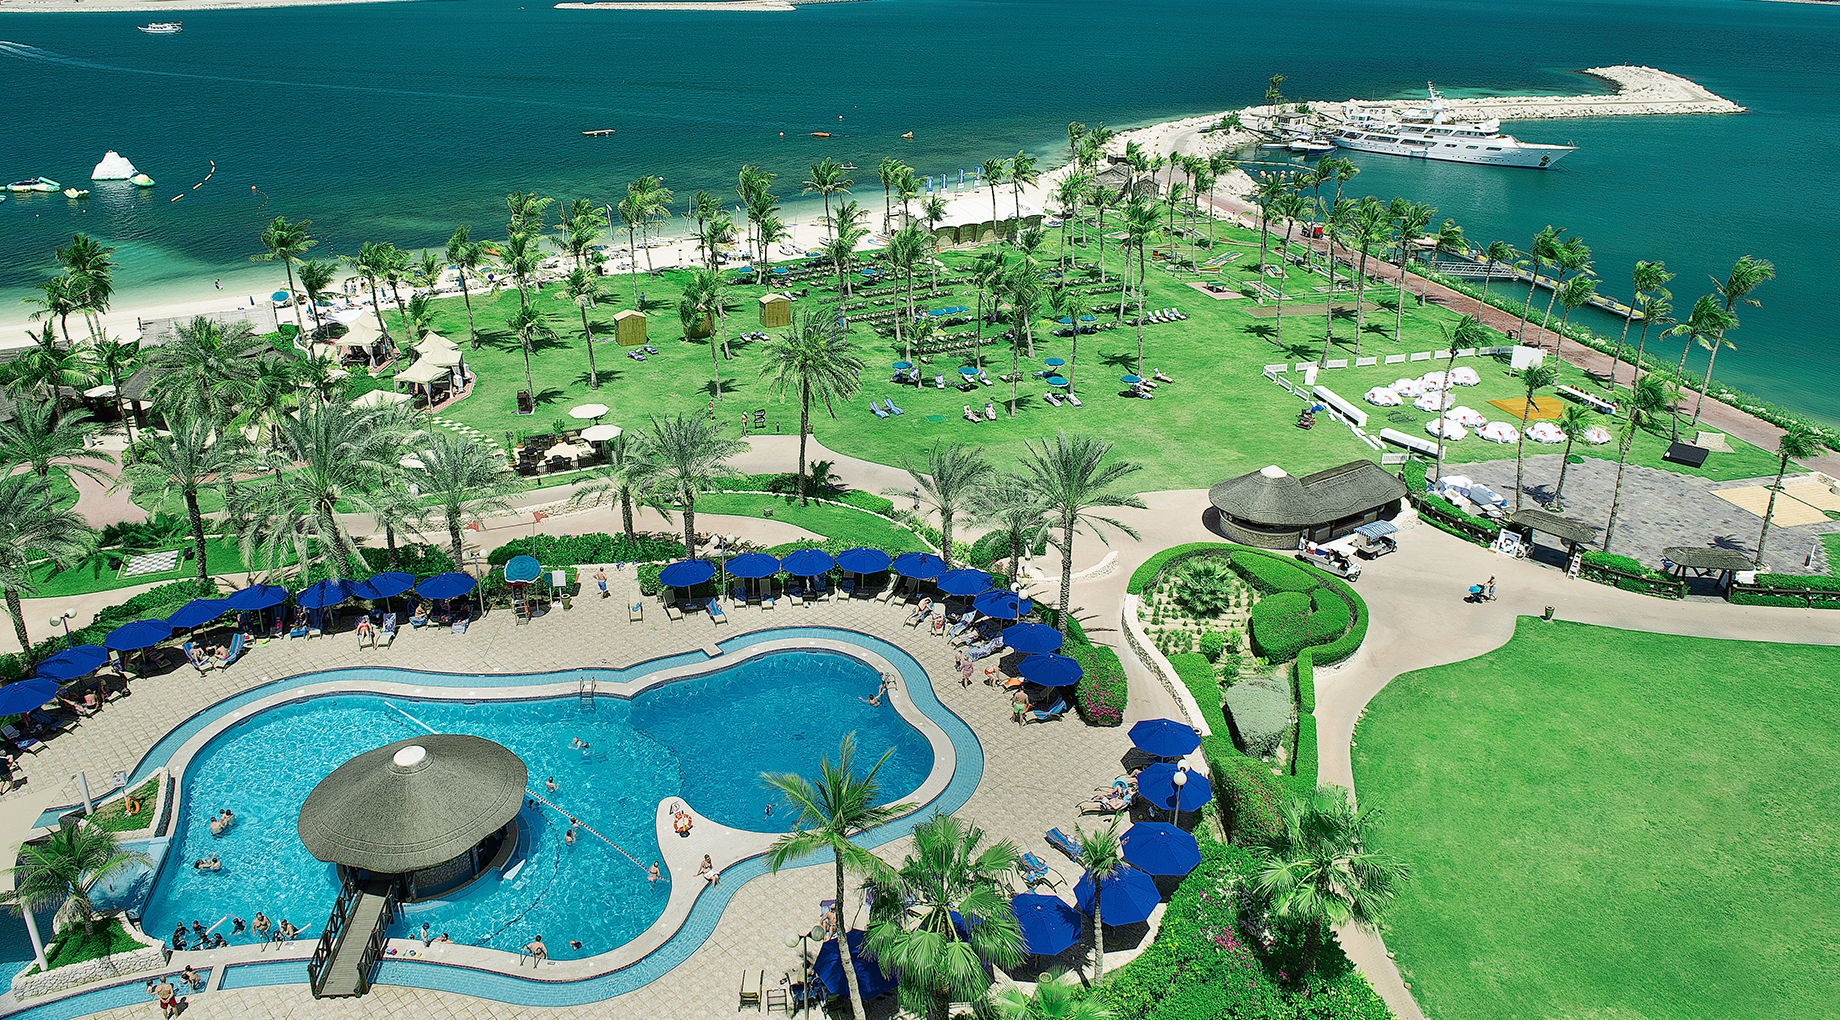 Aerial view of JA Jebel Ali Golf Resort in Dubai